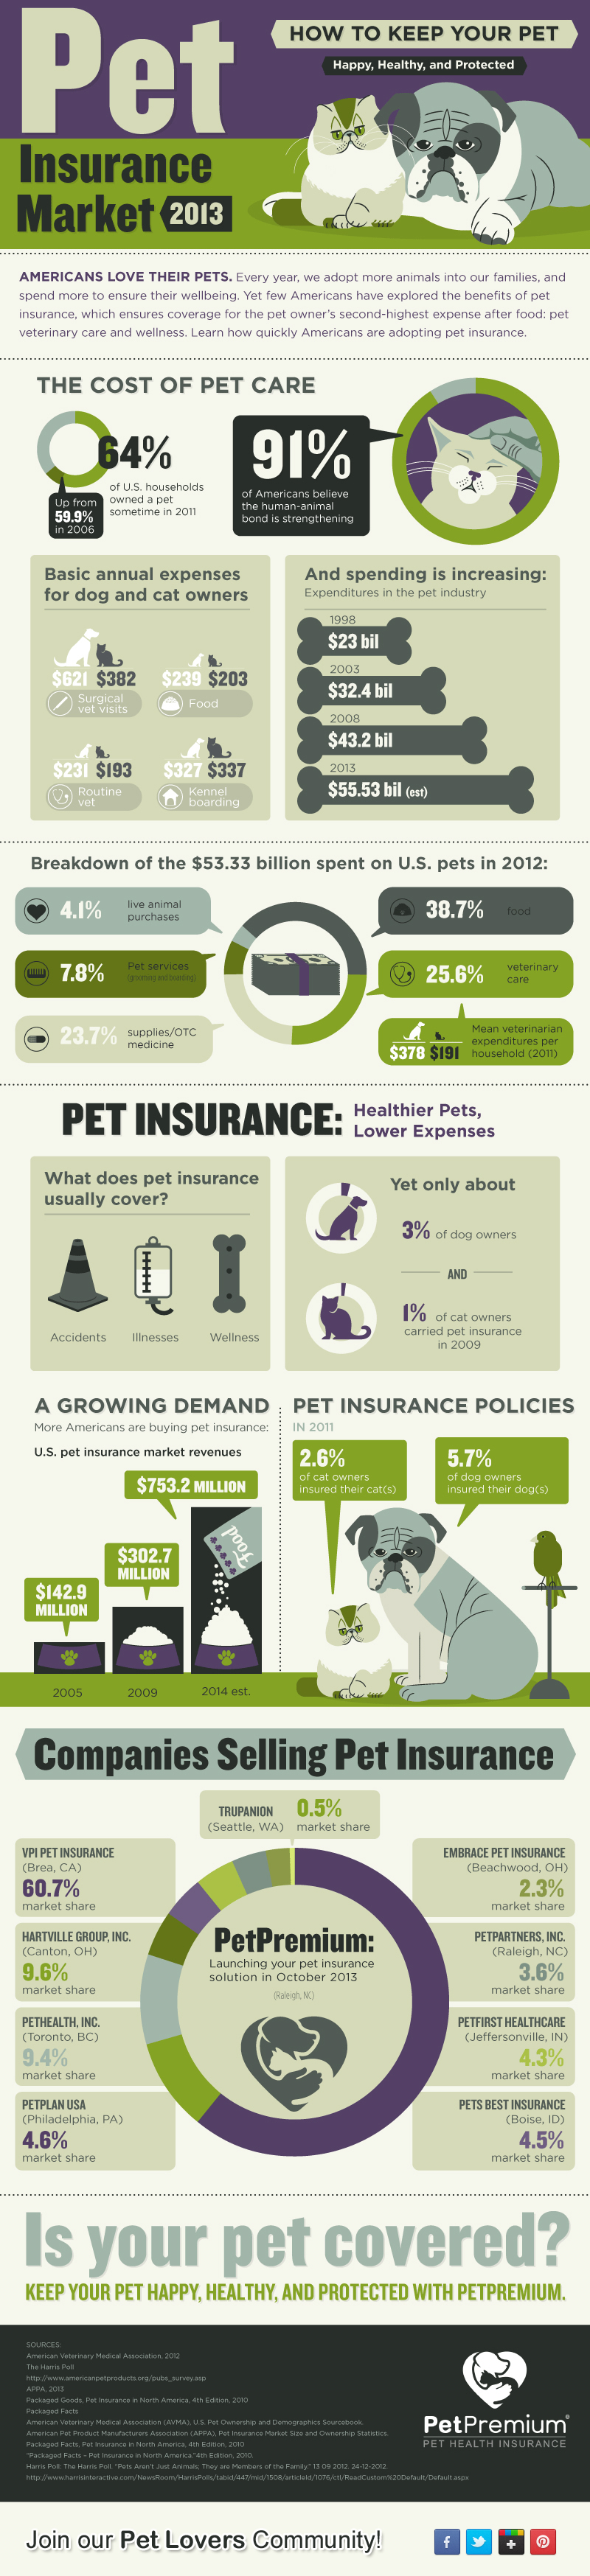 Pet Insurance Market - Infographic